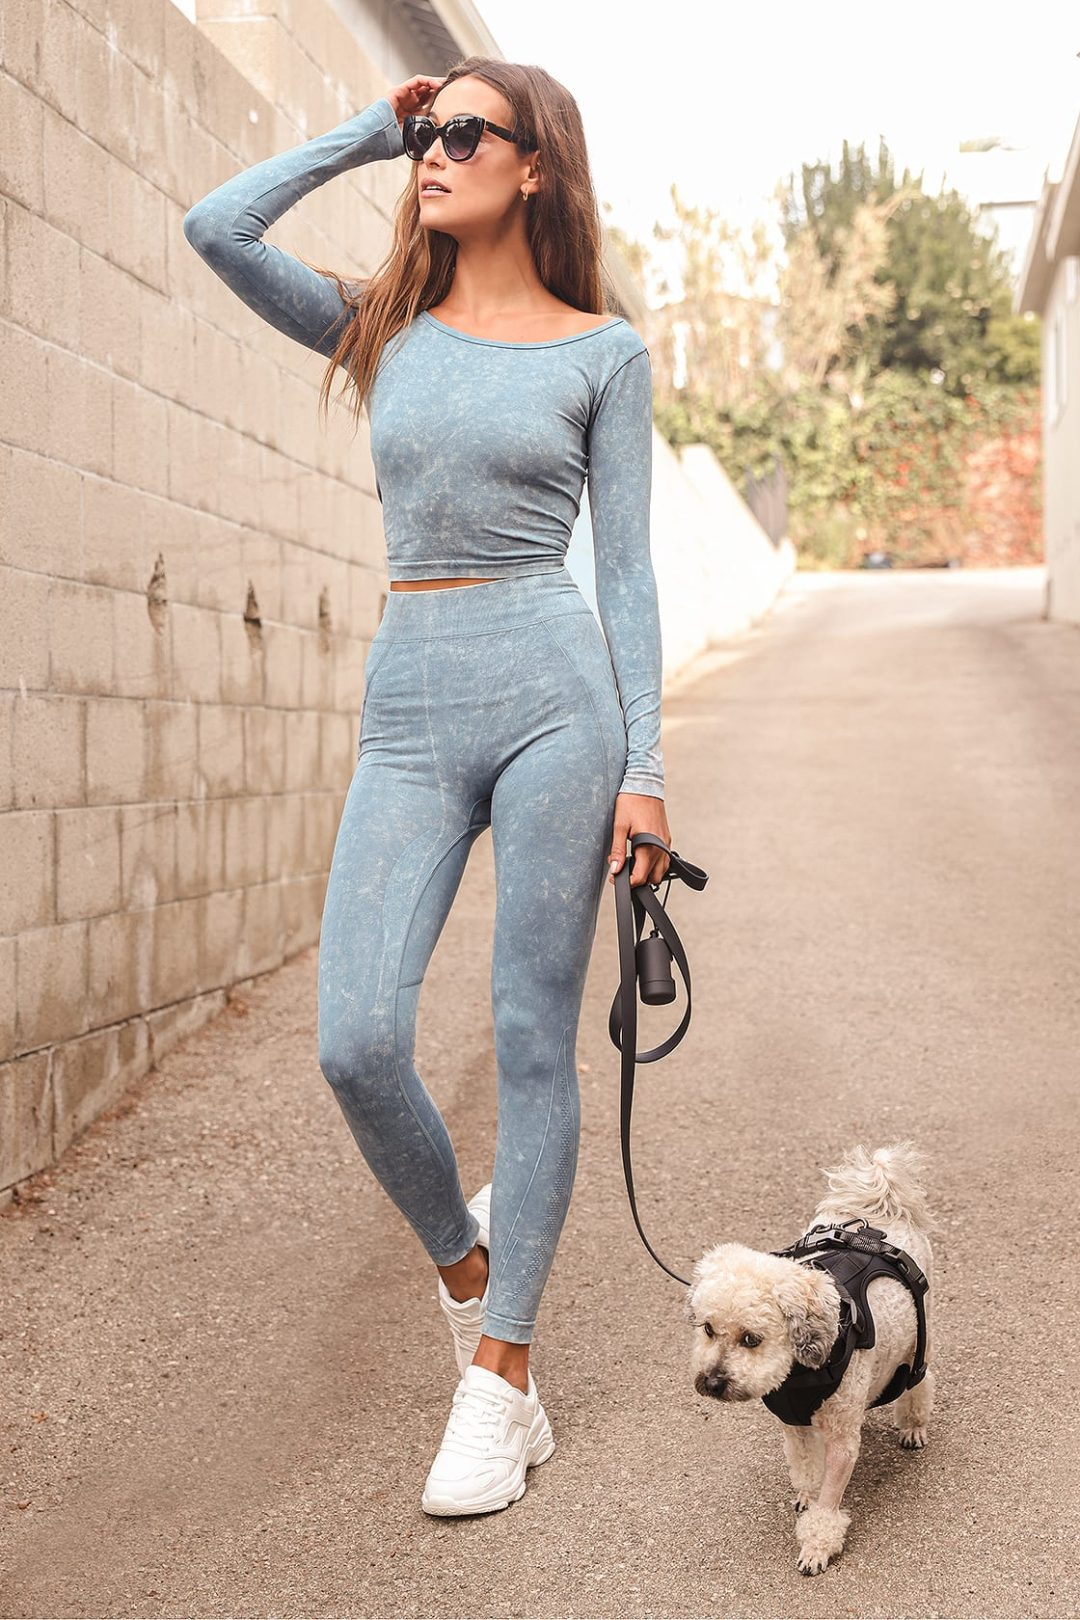 Cute dog walking outfits